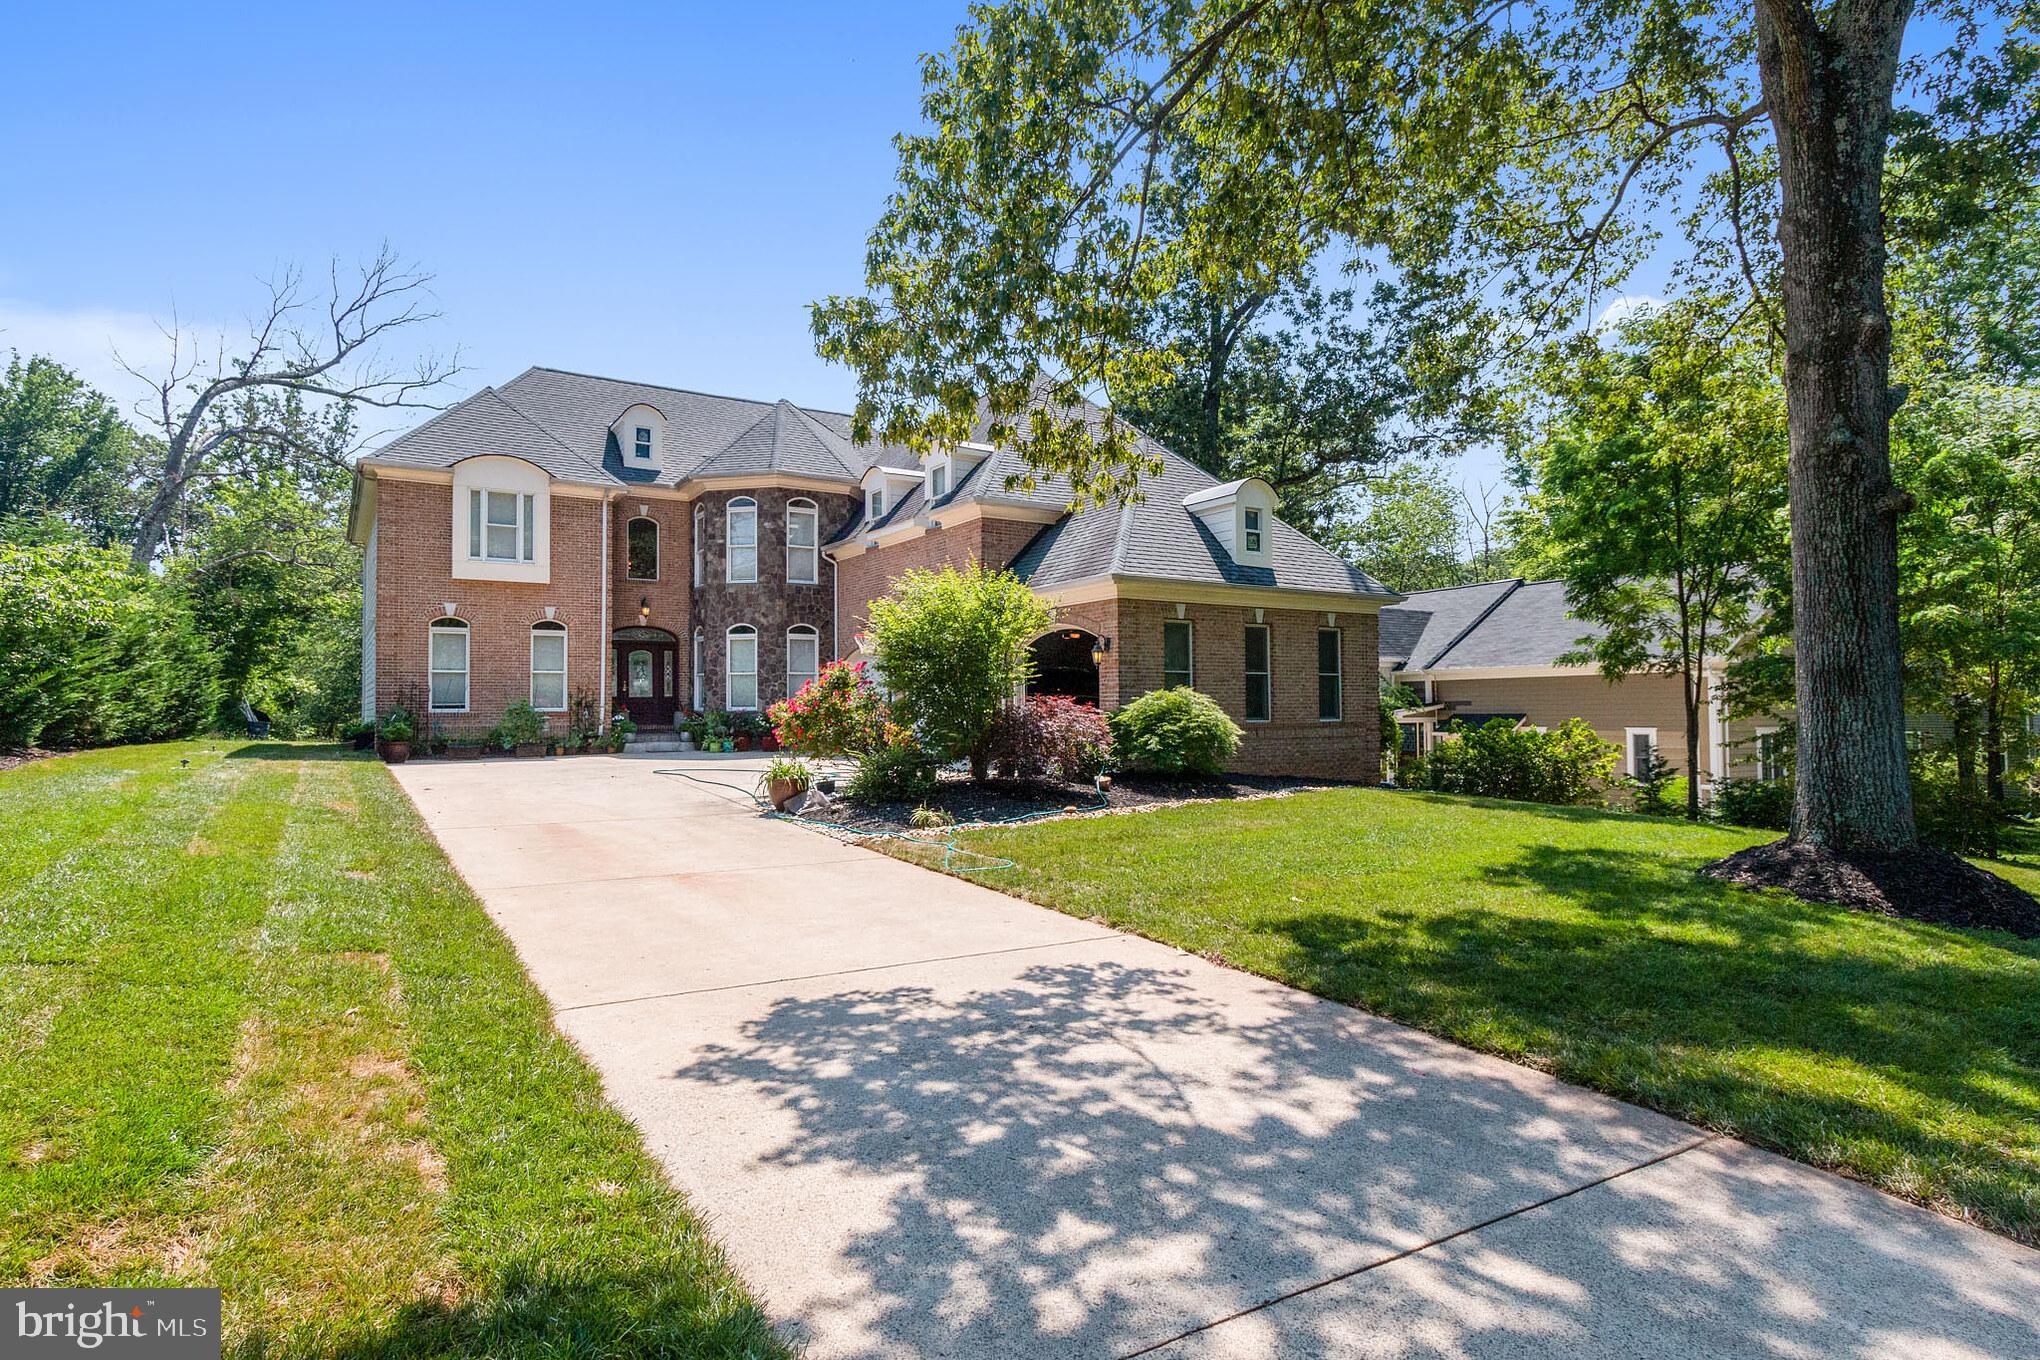 OPEN HOUSE SUNDAY, 6/5 FROM 1-3PM! Custom built 5 Bedroom, 4.5 Bath home, situated on a private 1-ac